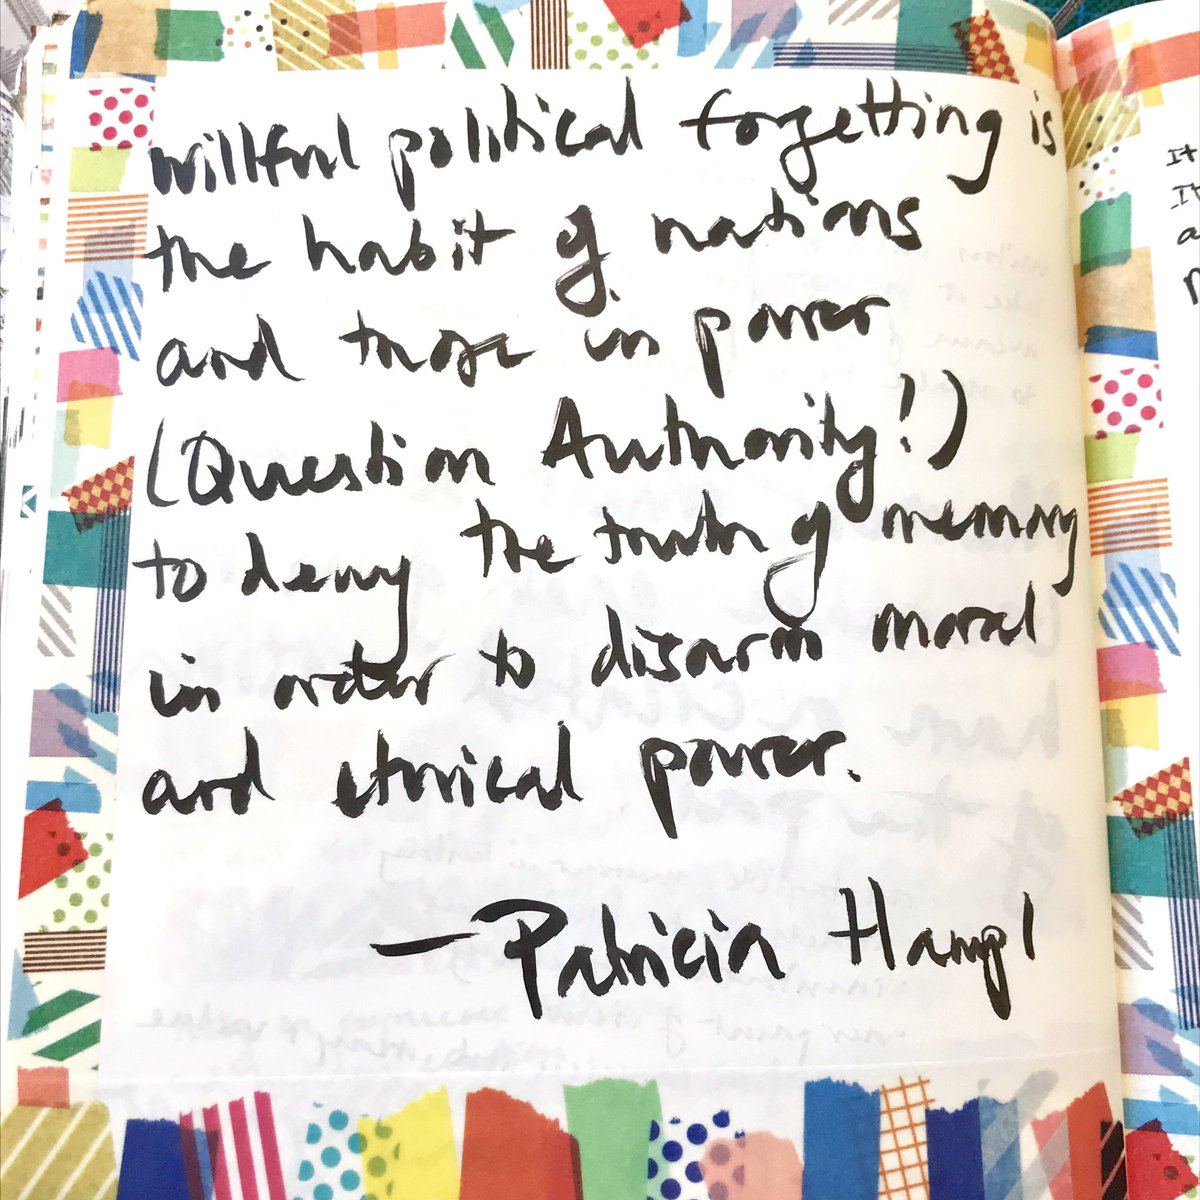 'Willful political forgetting is the habit of nations and those in power to deny the truth of memory in order to disarm moral and ethical power.' PatriciaHampl #Resist #MondayMotivation #Use #Memory & #Imagination #Write #Create #QuestionAuthoritypic.twitter.com/AV2ZDoVmA4